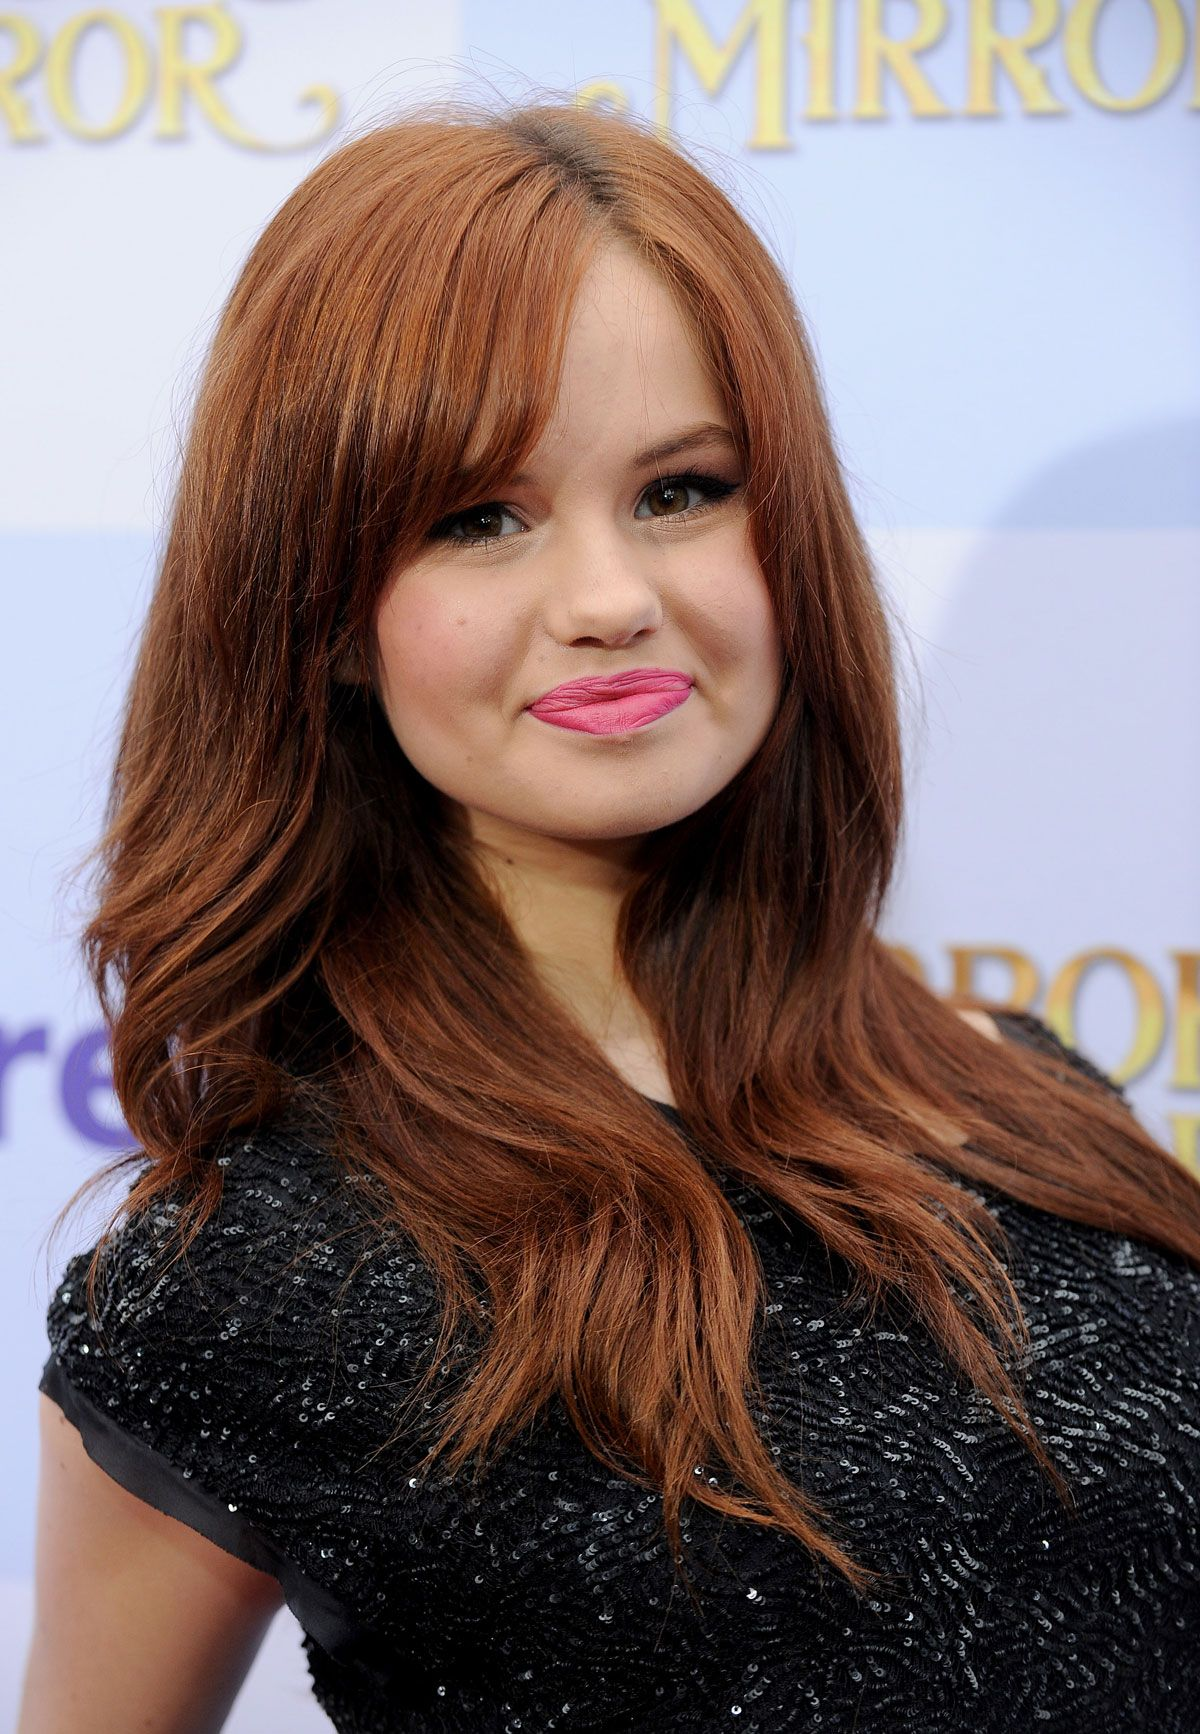 Debby Ryan wallpapers, Celebrity, HQ Debby Ryan pictures